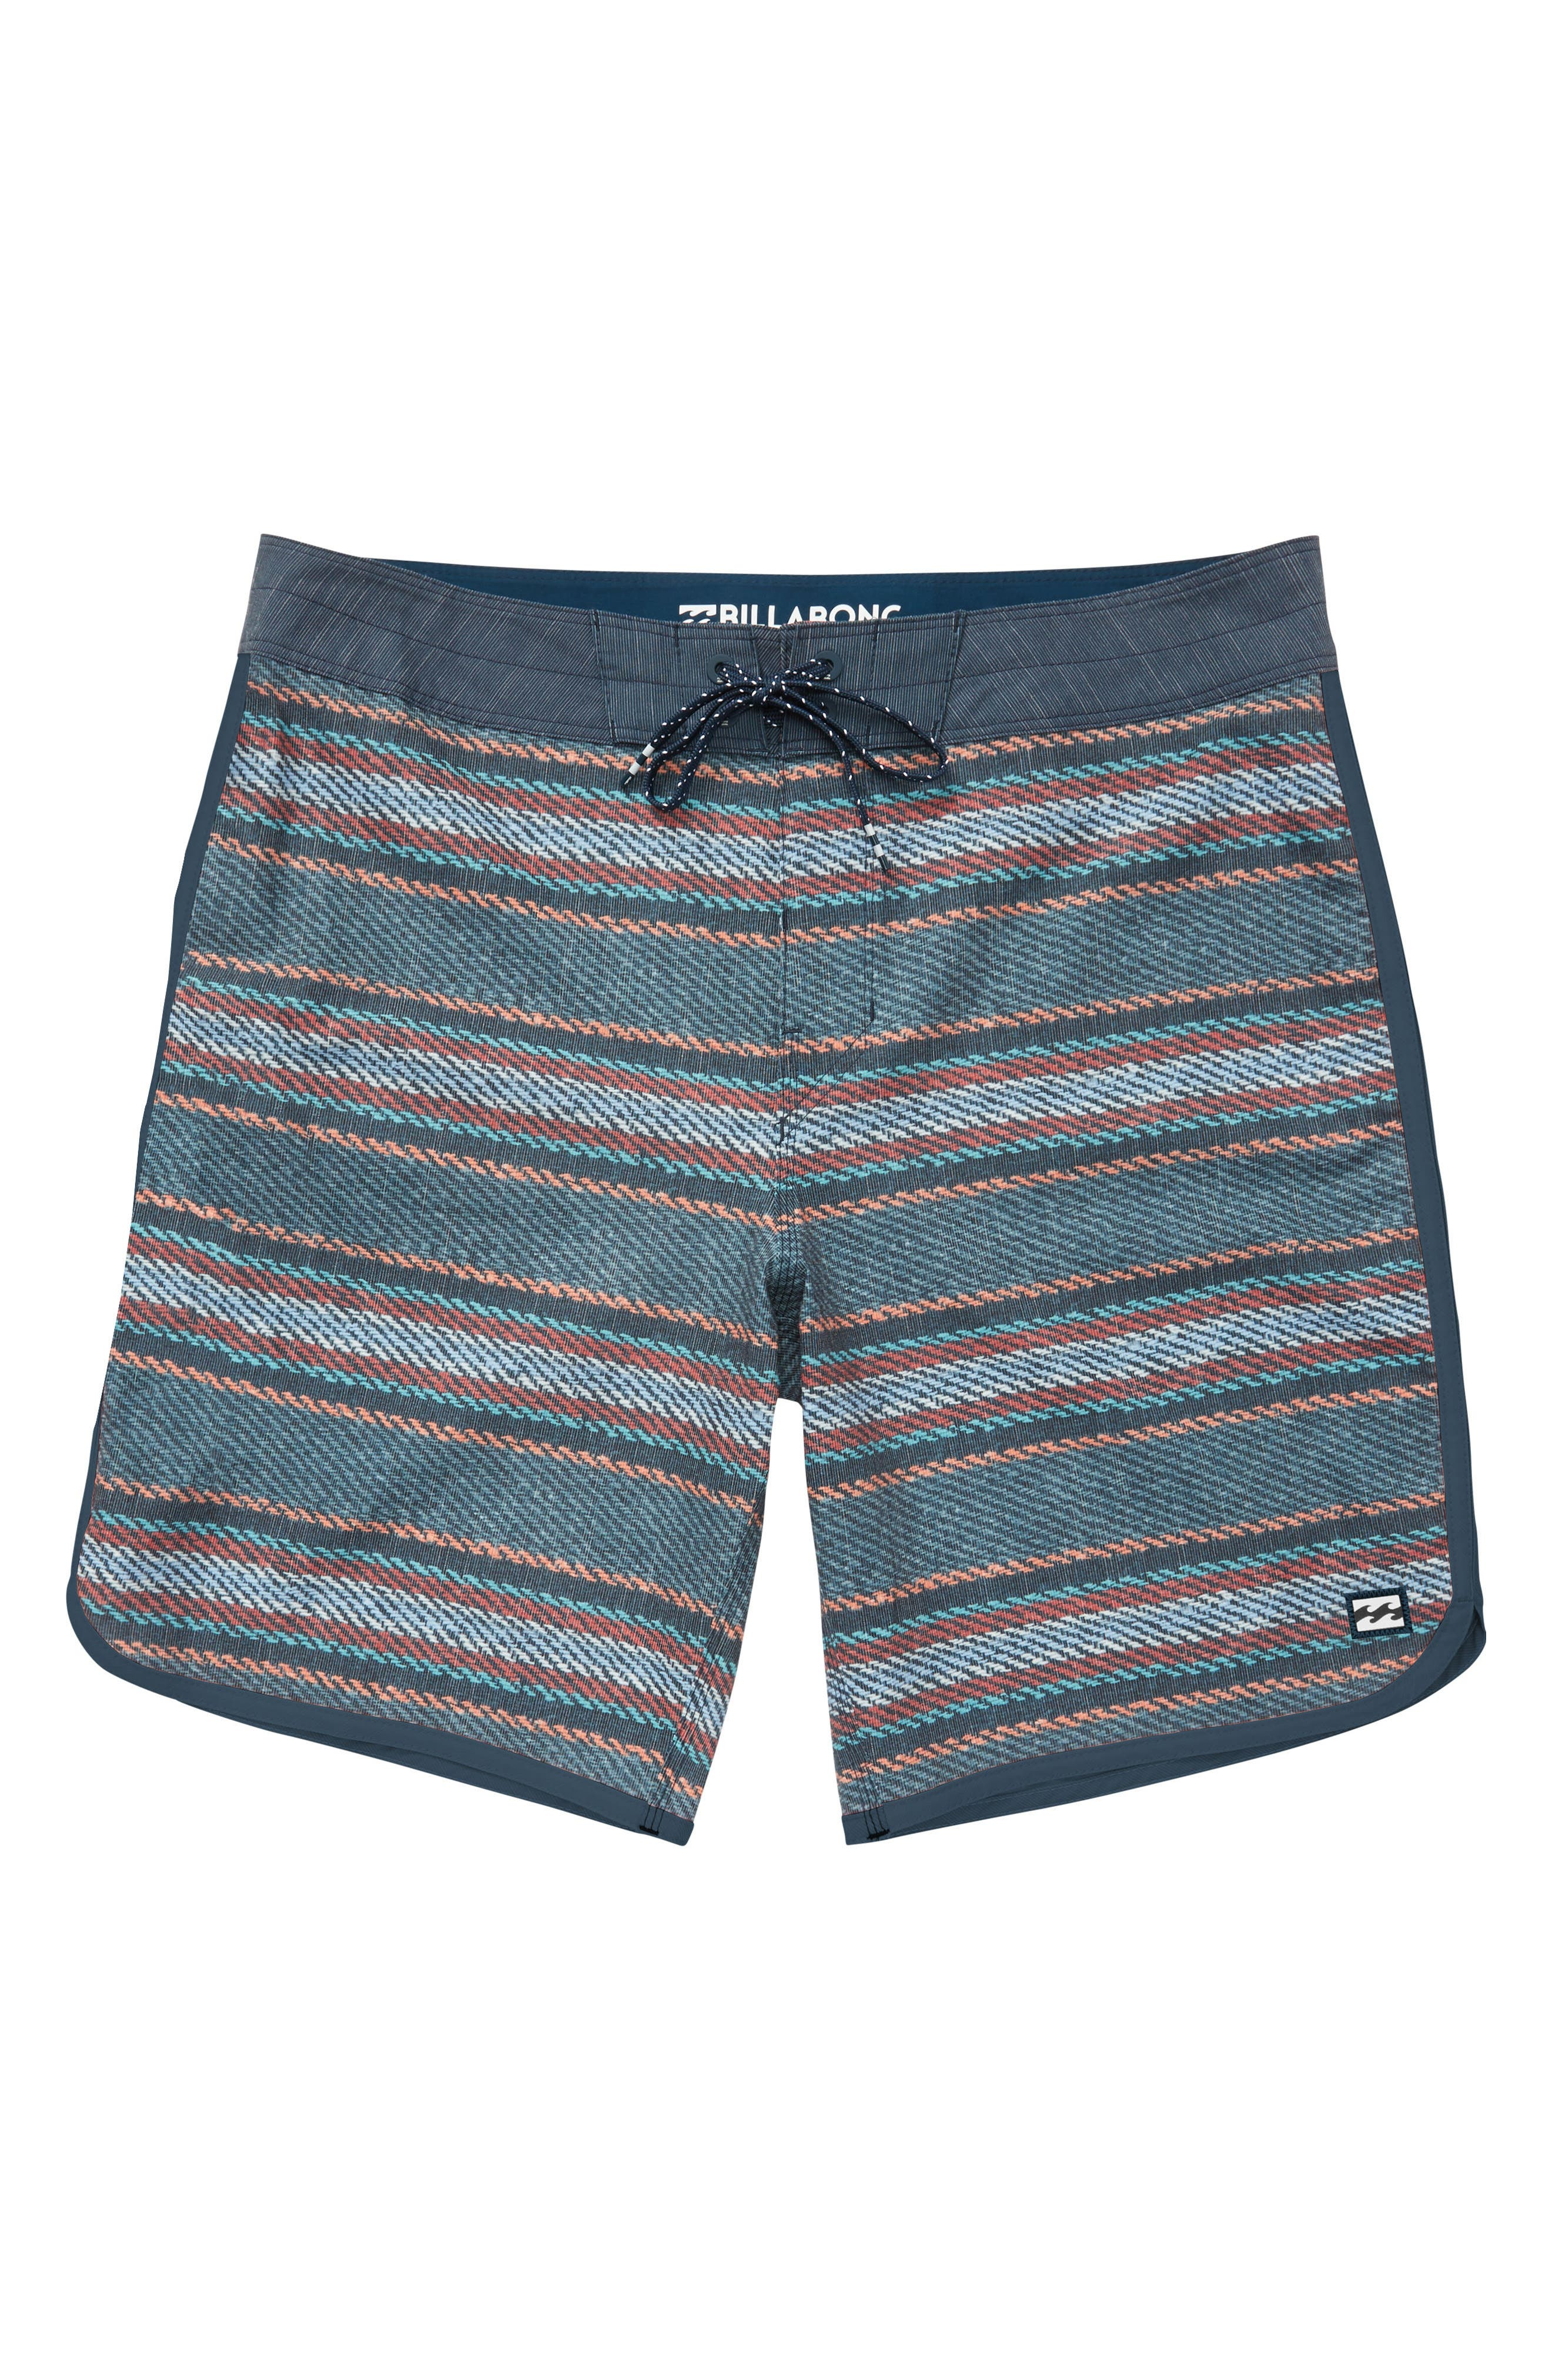 73 LT Lineup Swim Trunks,                             Main thumbnail 2, color,